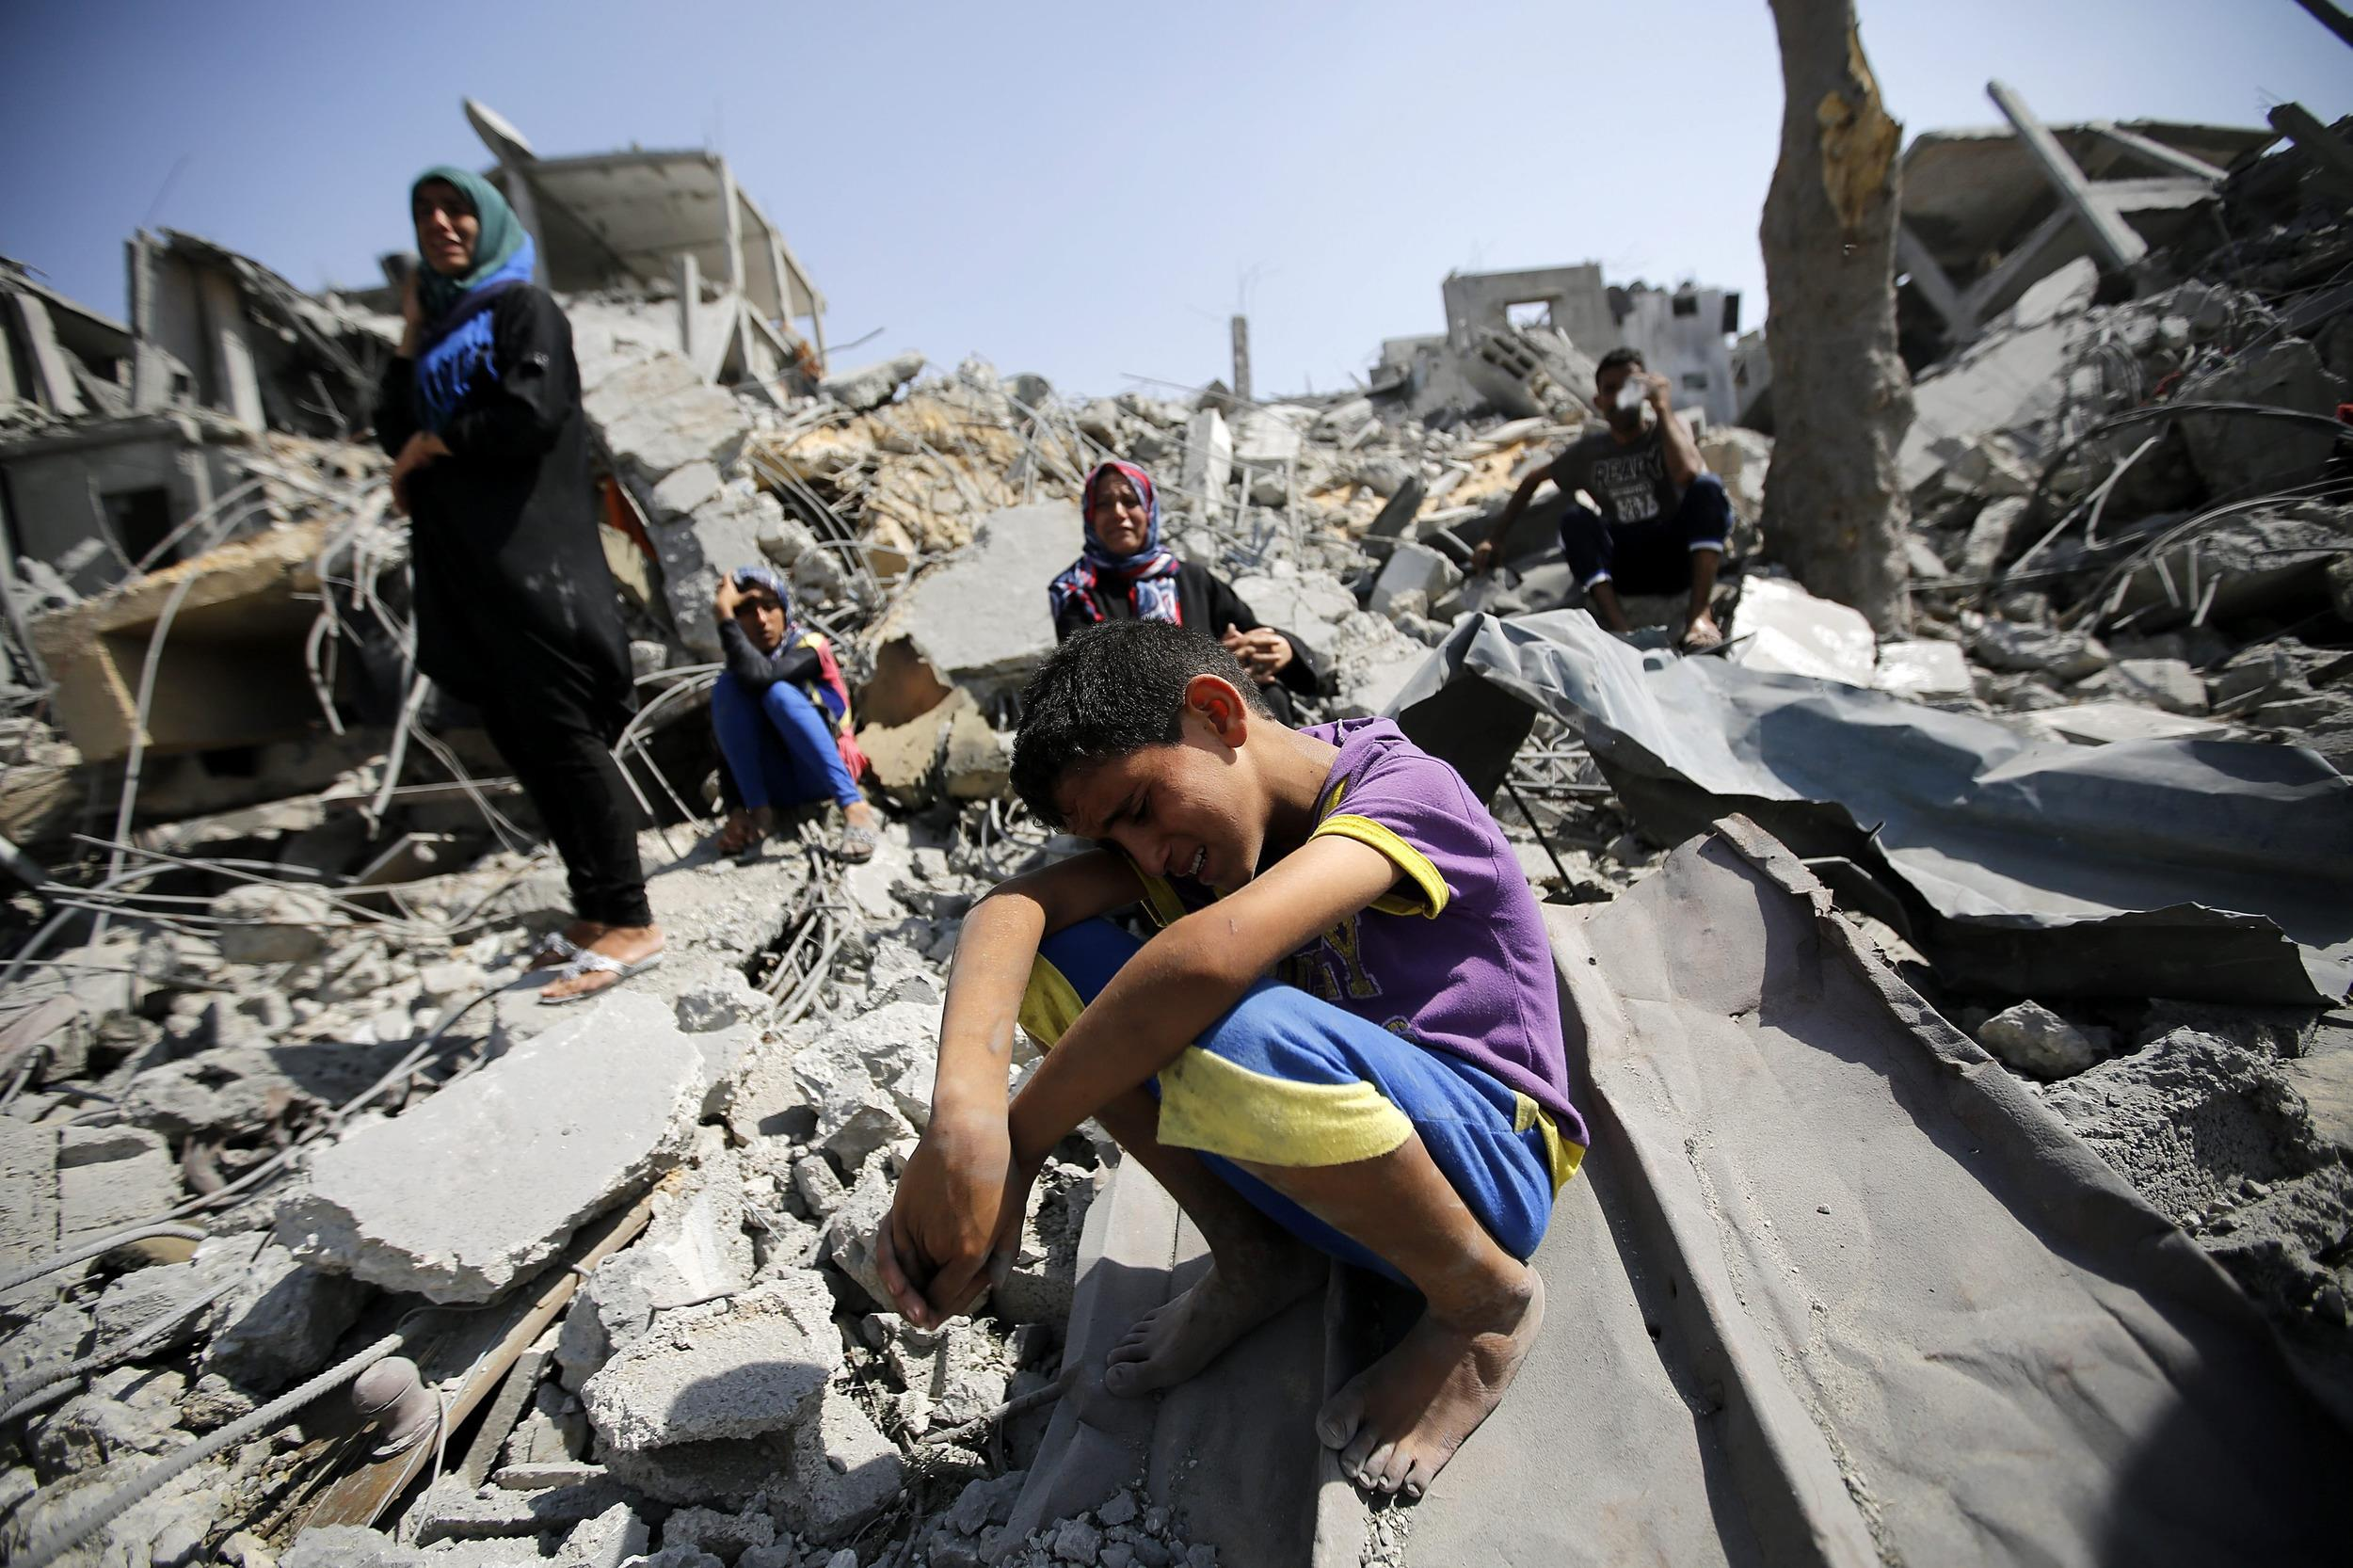 Image: Gaza ceasefire breaks down, dozens killed